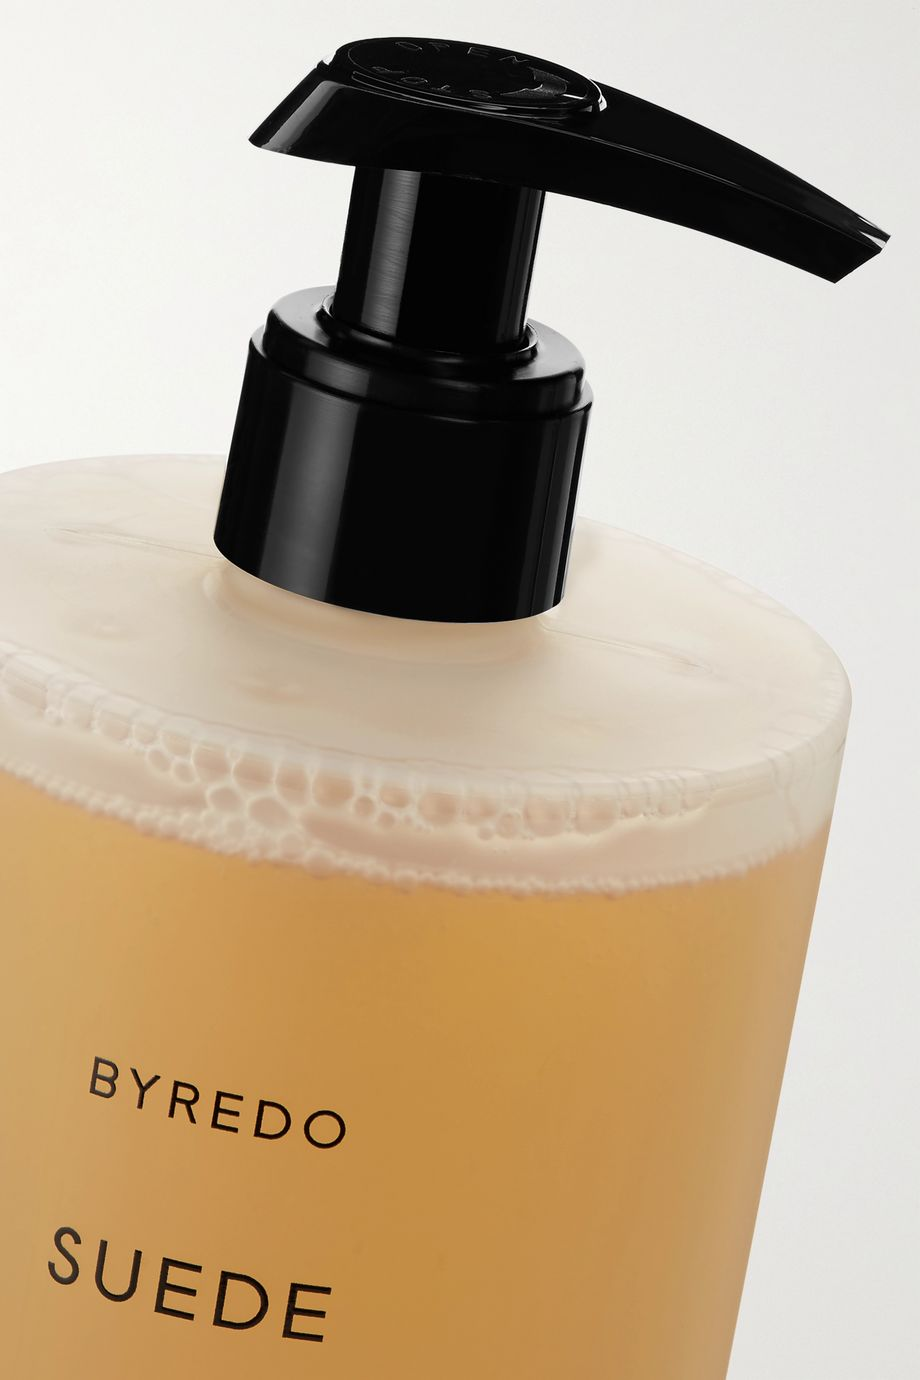 Byredo Suede Hand Wash, 450 ml – Handseife